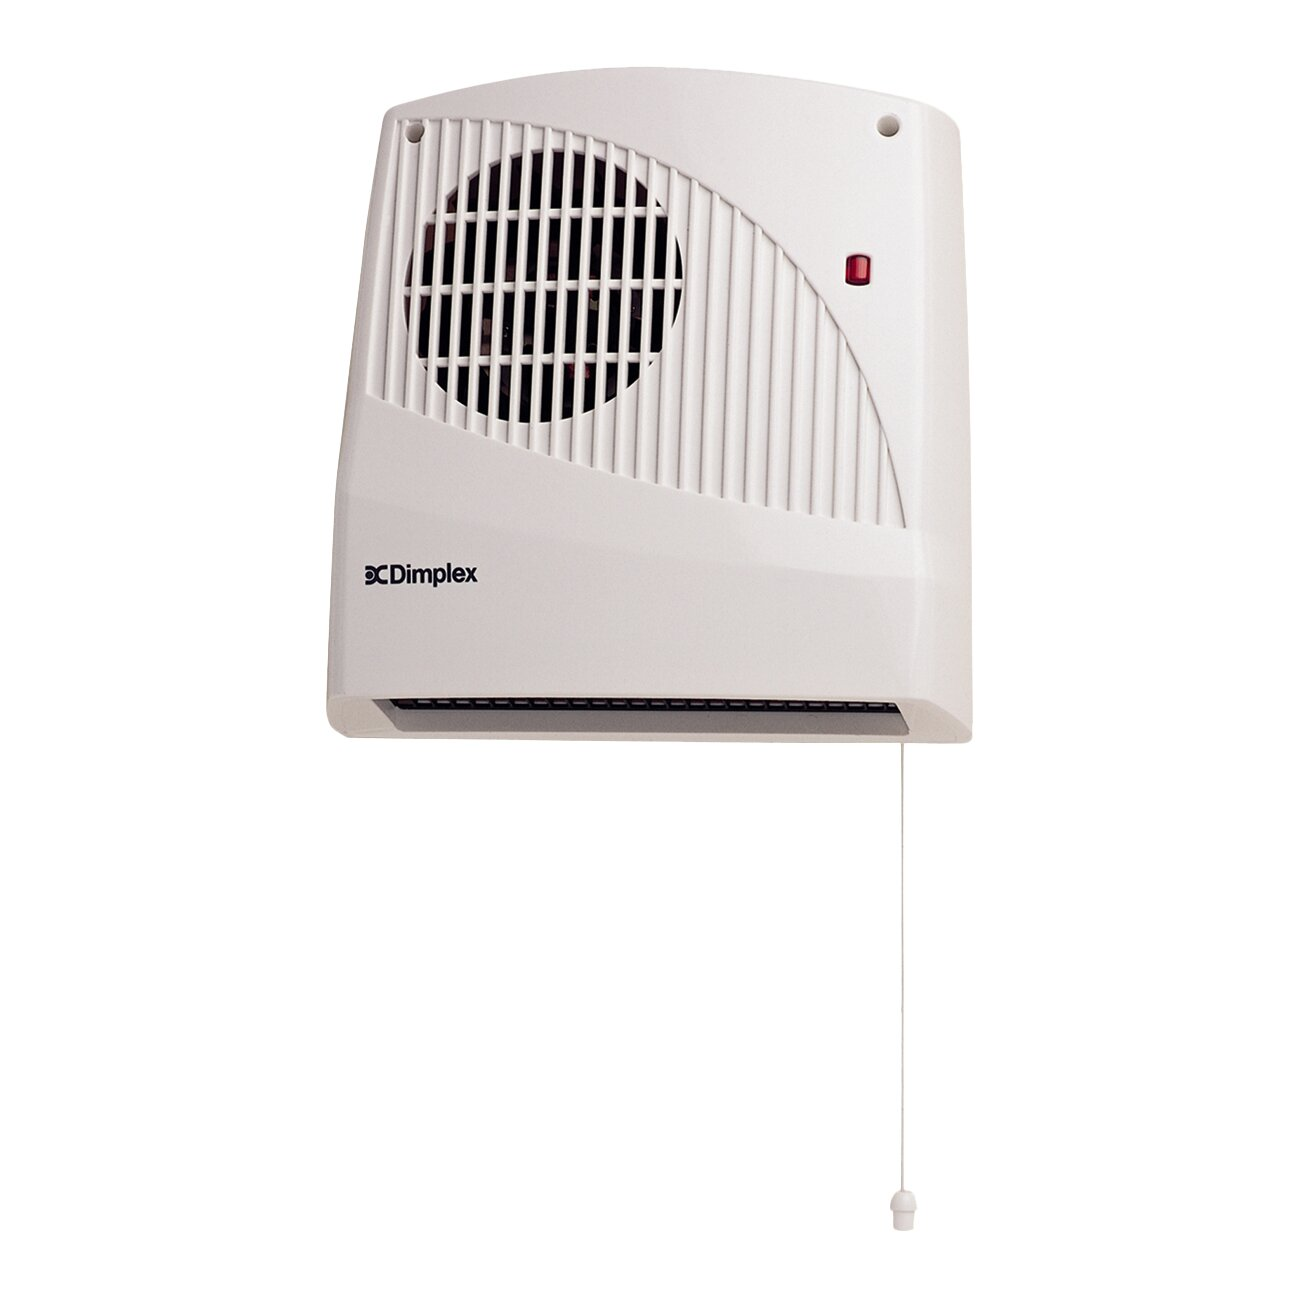 dimplex 2000 watt wall mounted electric fan heater with. Black Bedroom Furniture Sets. Home Design Ideas